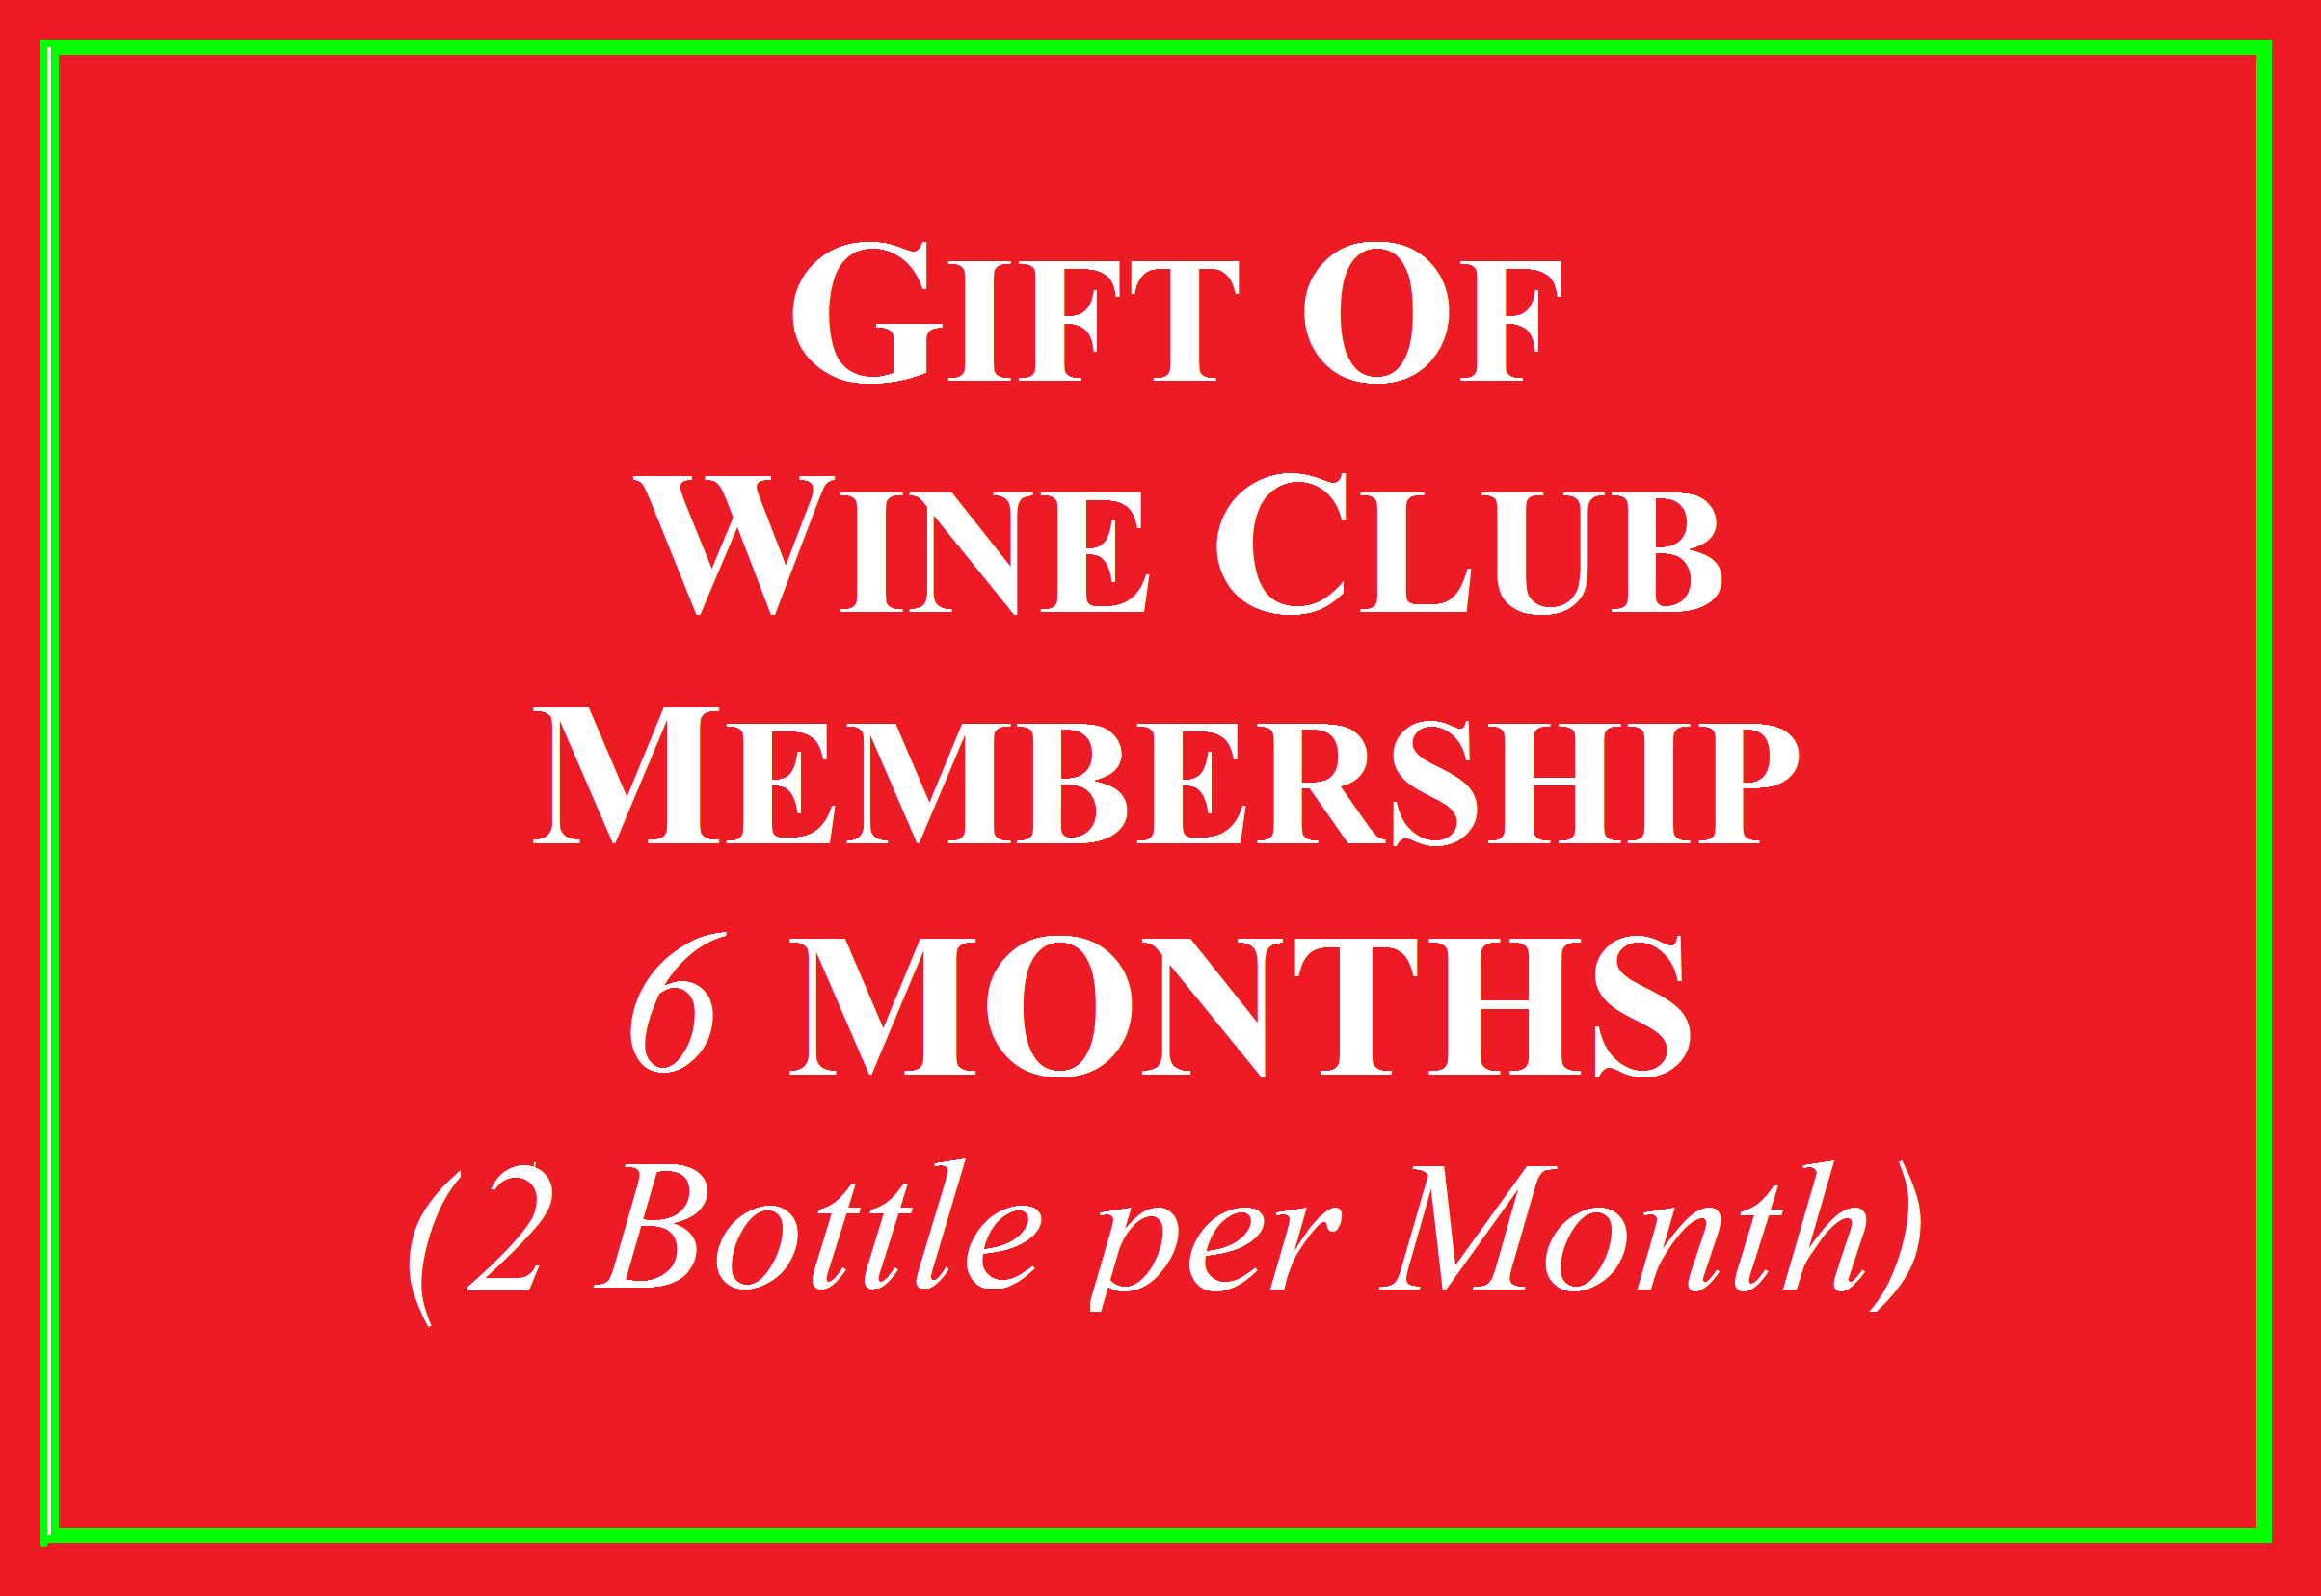 Wine Club Gift for 6 Months 2 Bottle Photo